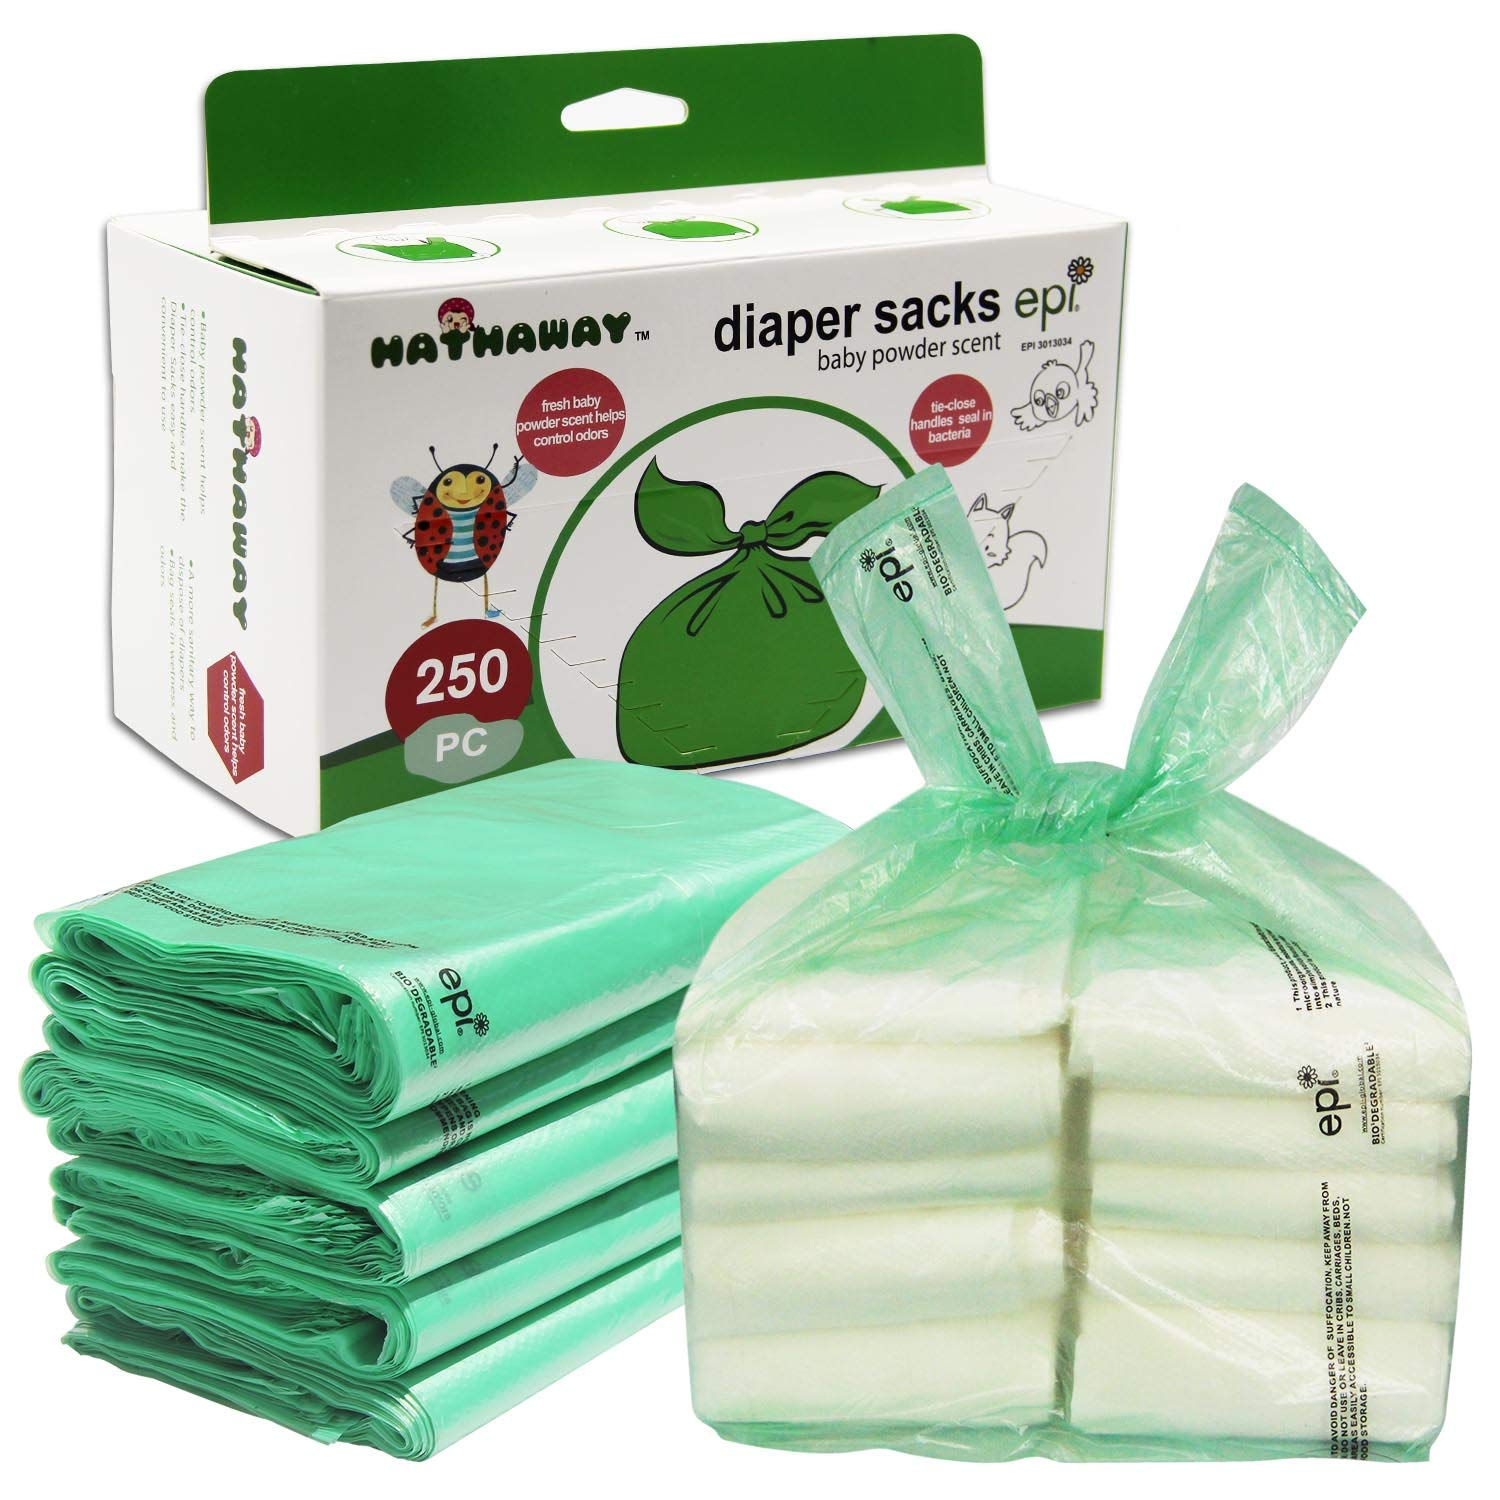 Baby Disposable Diaper Bags, 100% Biodegradable Diaper Sacks with Baby Powder Scent and Added Baking Soda to Absorb Odors ( 250 Count ) by Hathaway